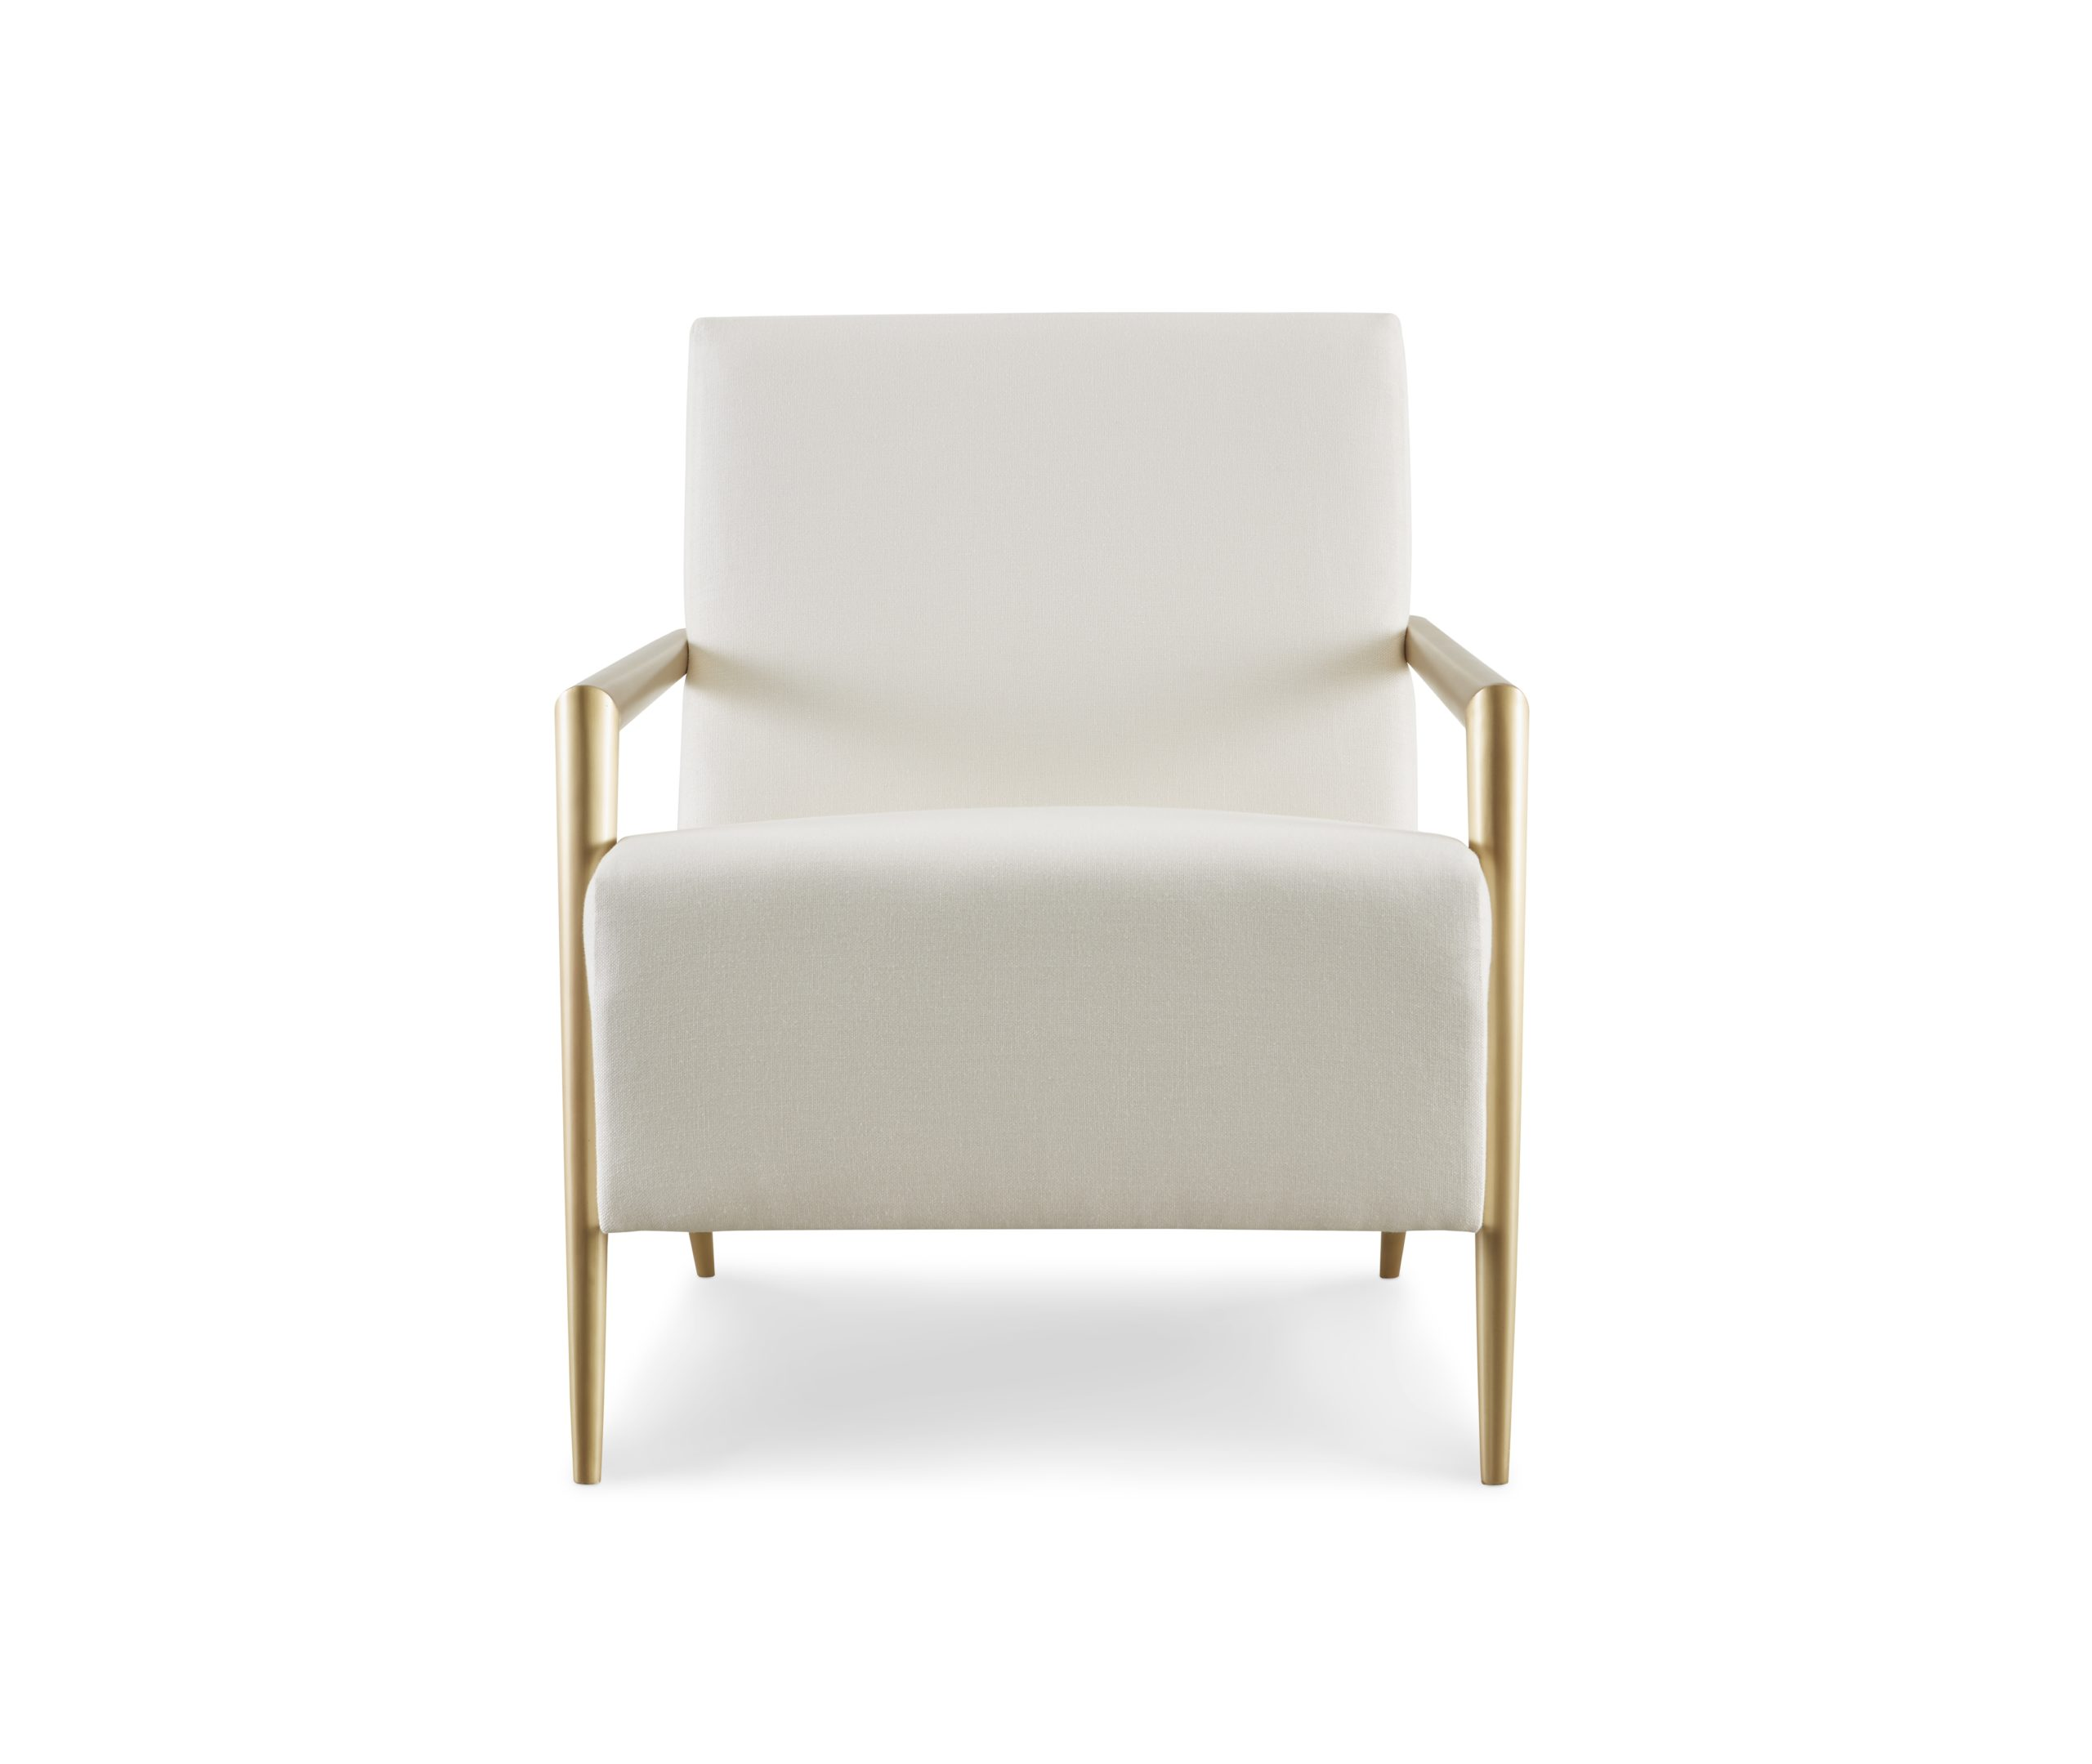 Baker_products_WNWN_enzo_lounge_chair_BAU3104c_FRONT-scaled-2